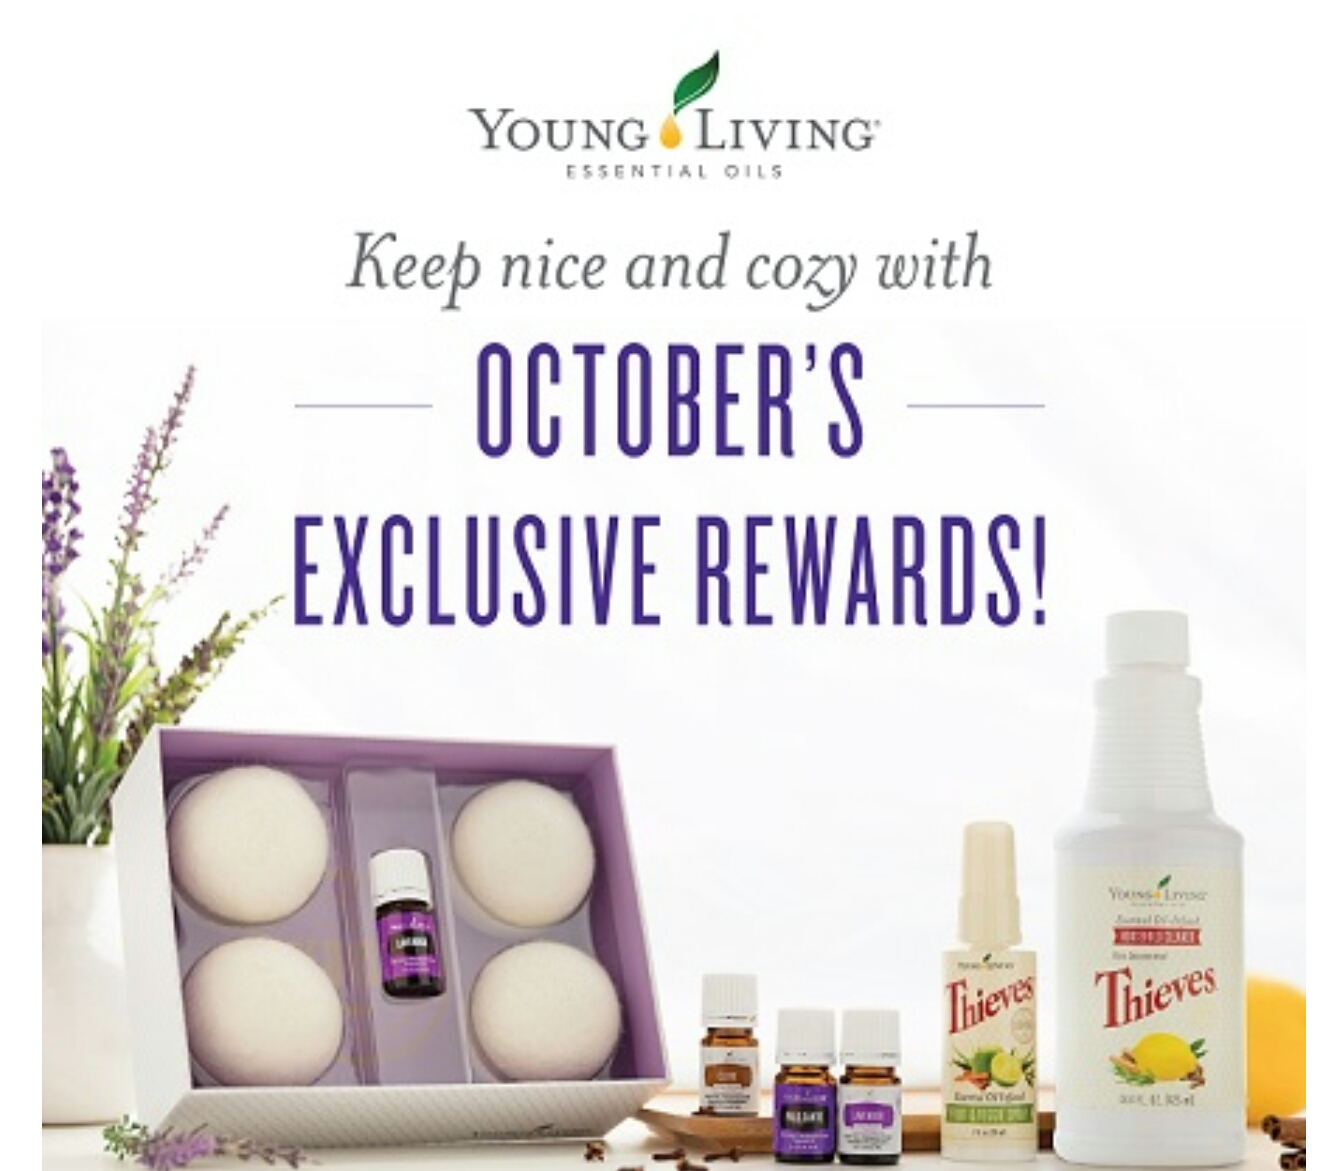 Charmant ... A Warm Home, And An Incredible Business That Empowers You To Share The  Power Of Natureu0027s Gifts. Octoberu0027s PV Promotion Offers Young Living ...